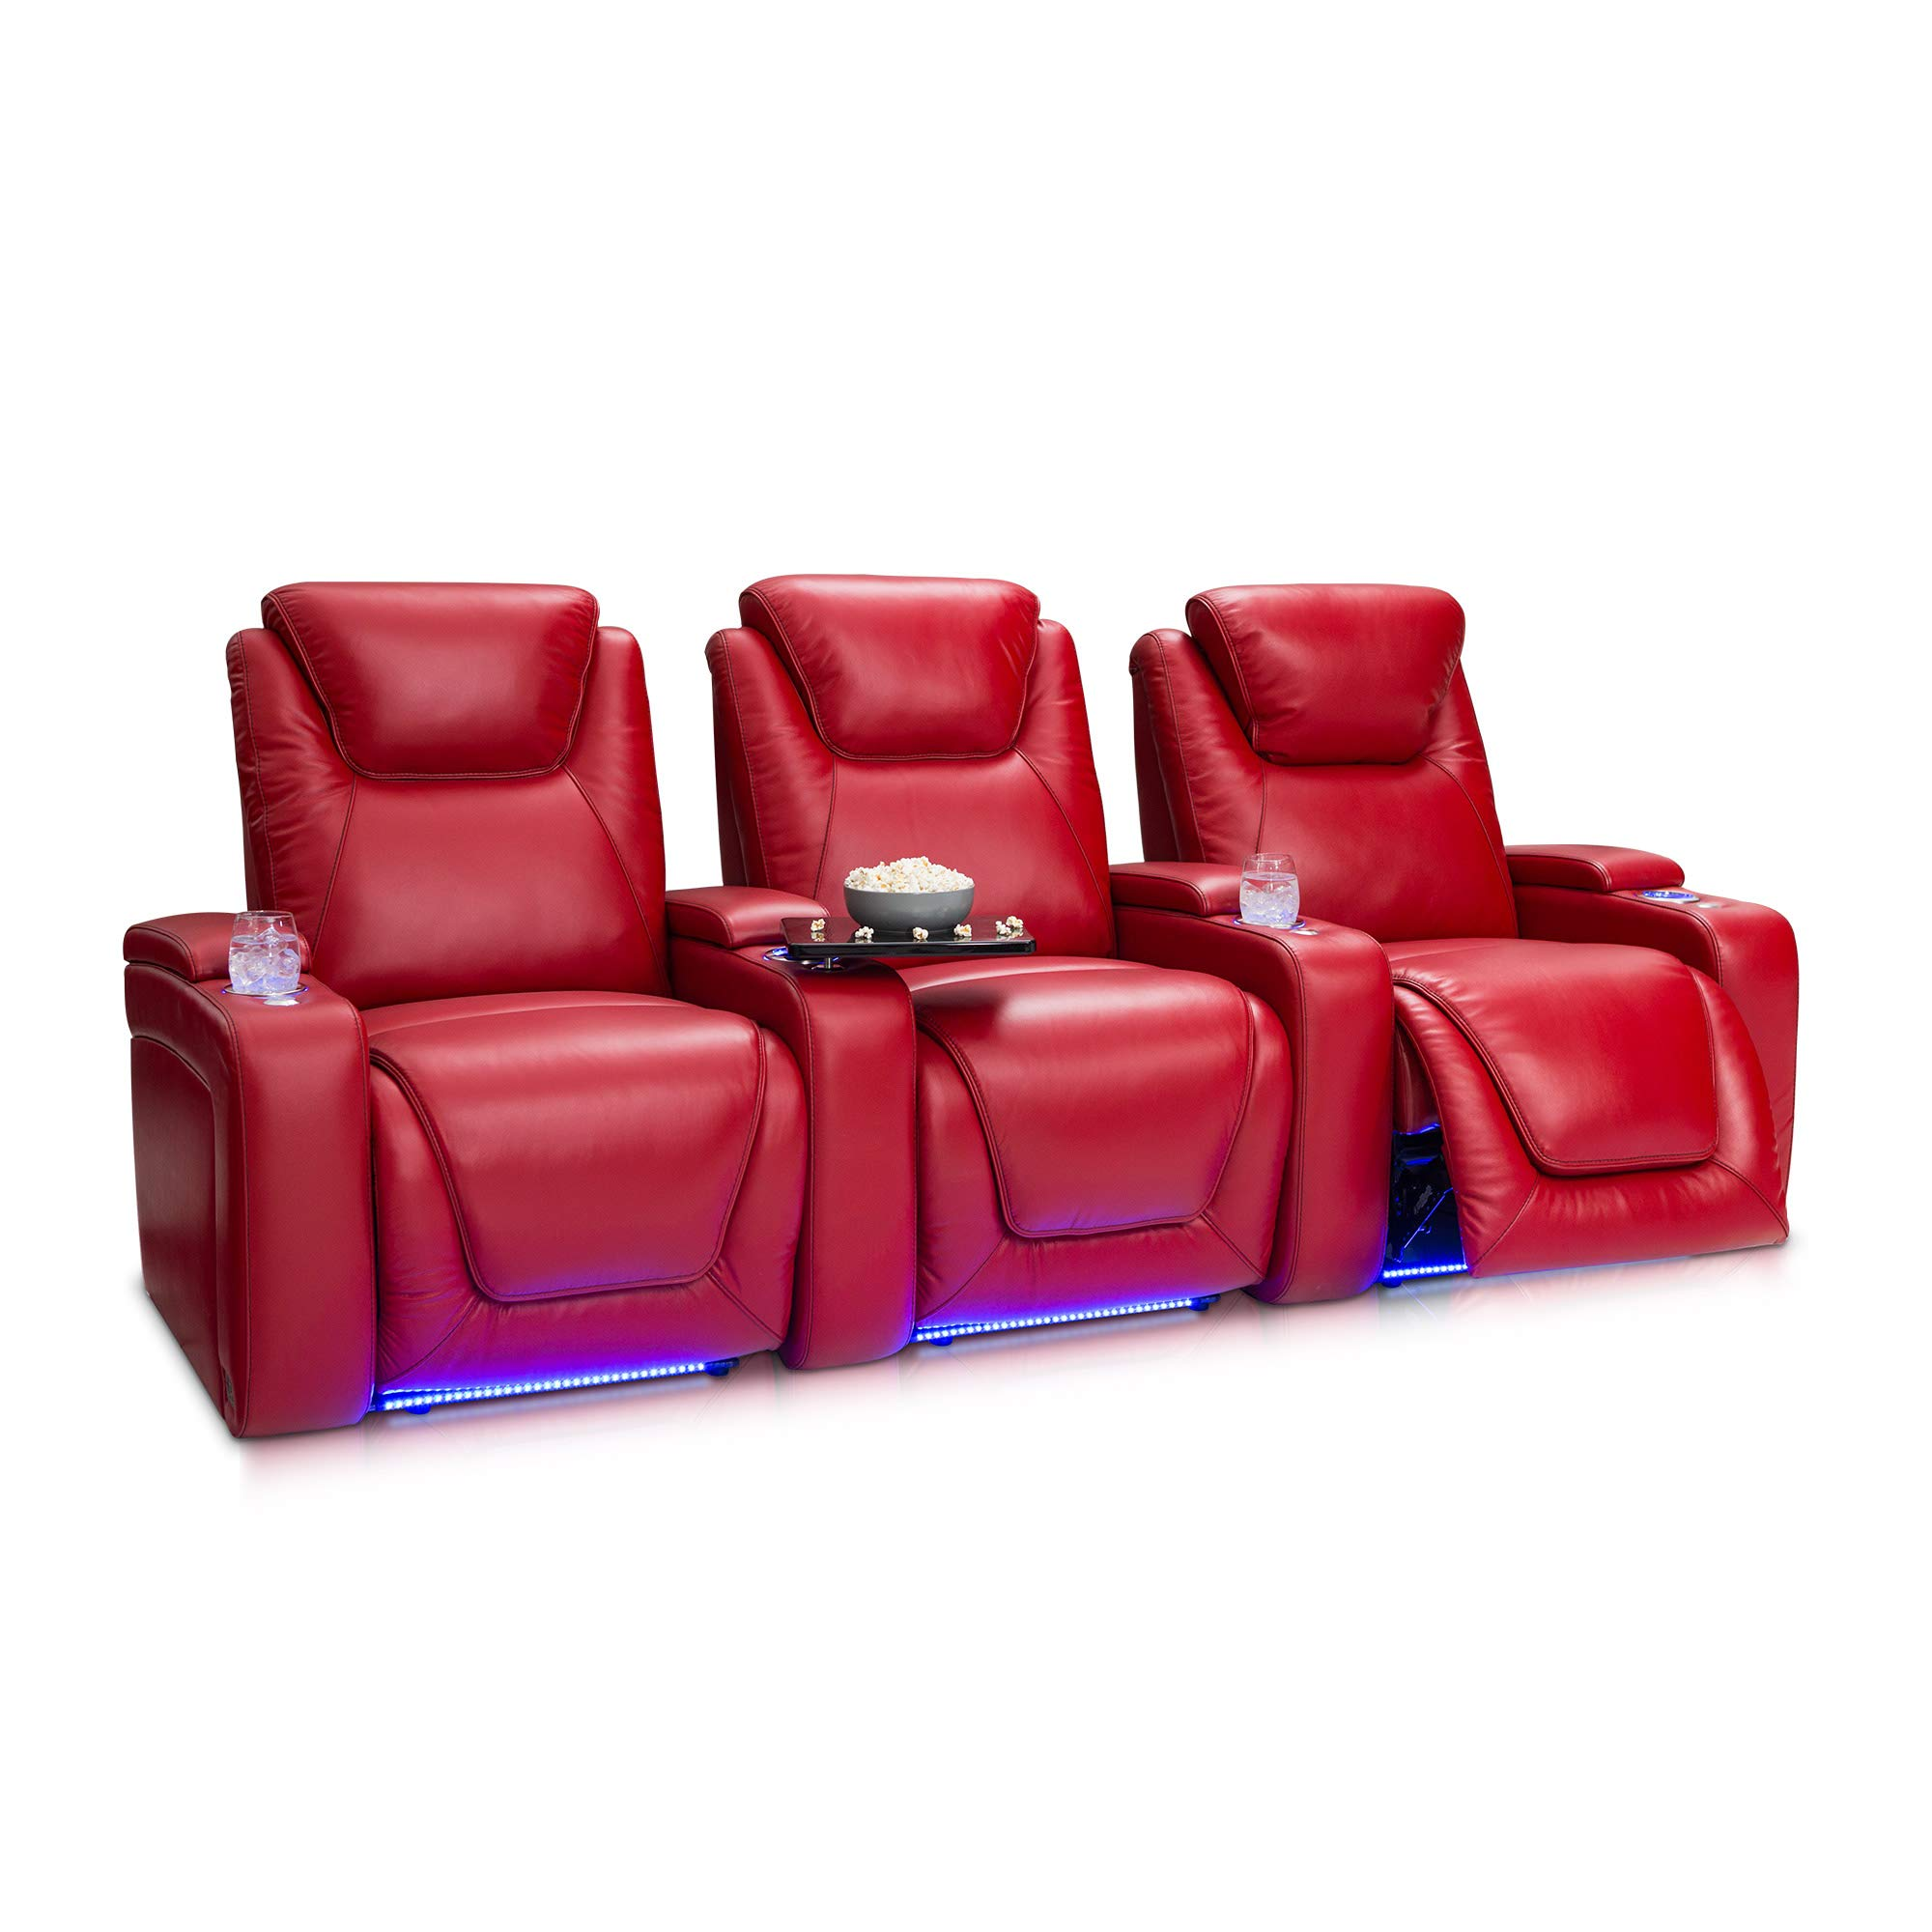 Seatcraft Equinox Home Theater Seating Power Recline Leather (Row of 3, Red) by Seatcraft